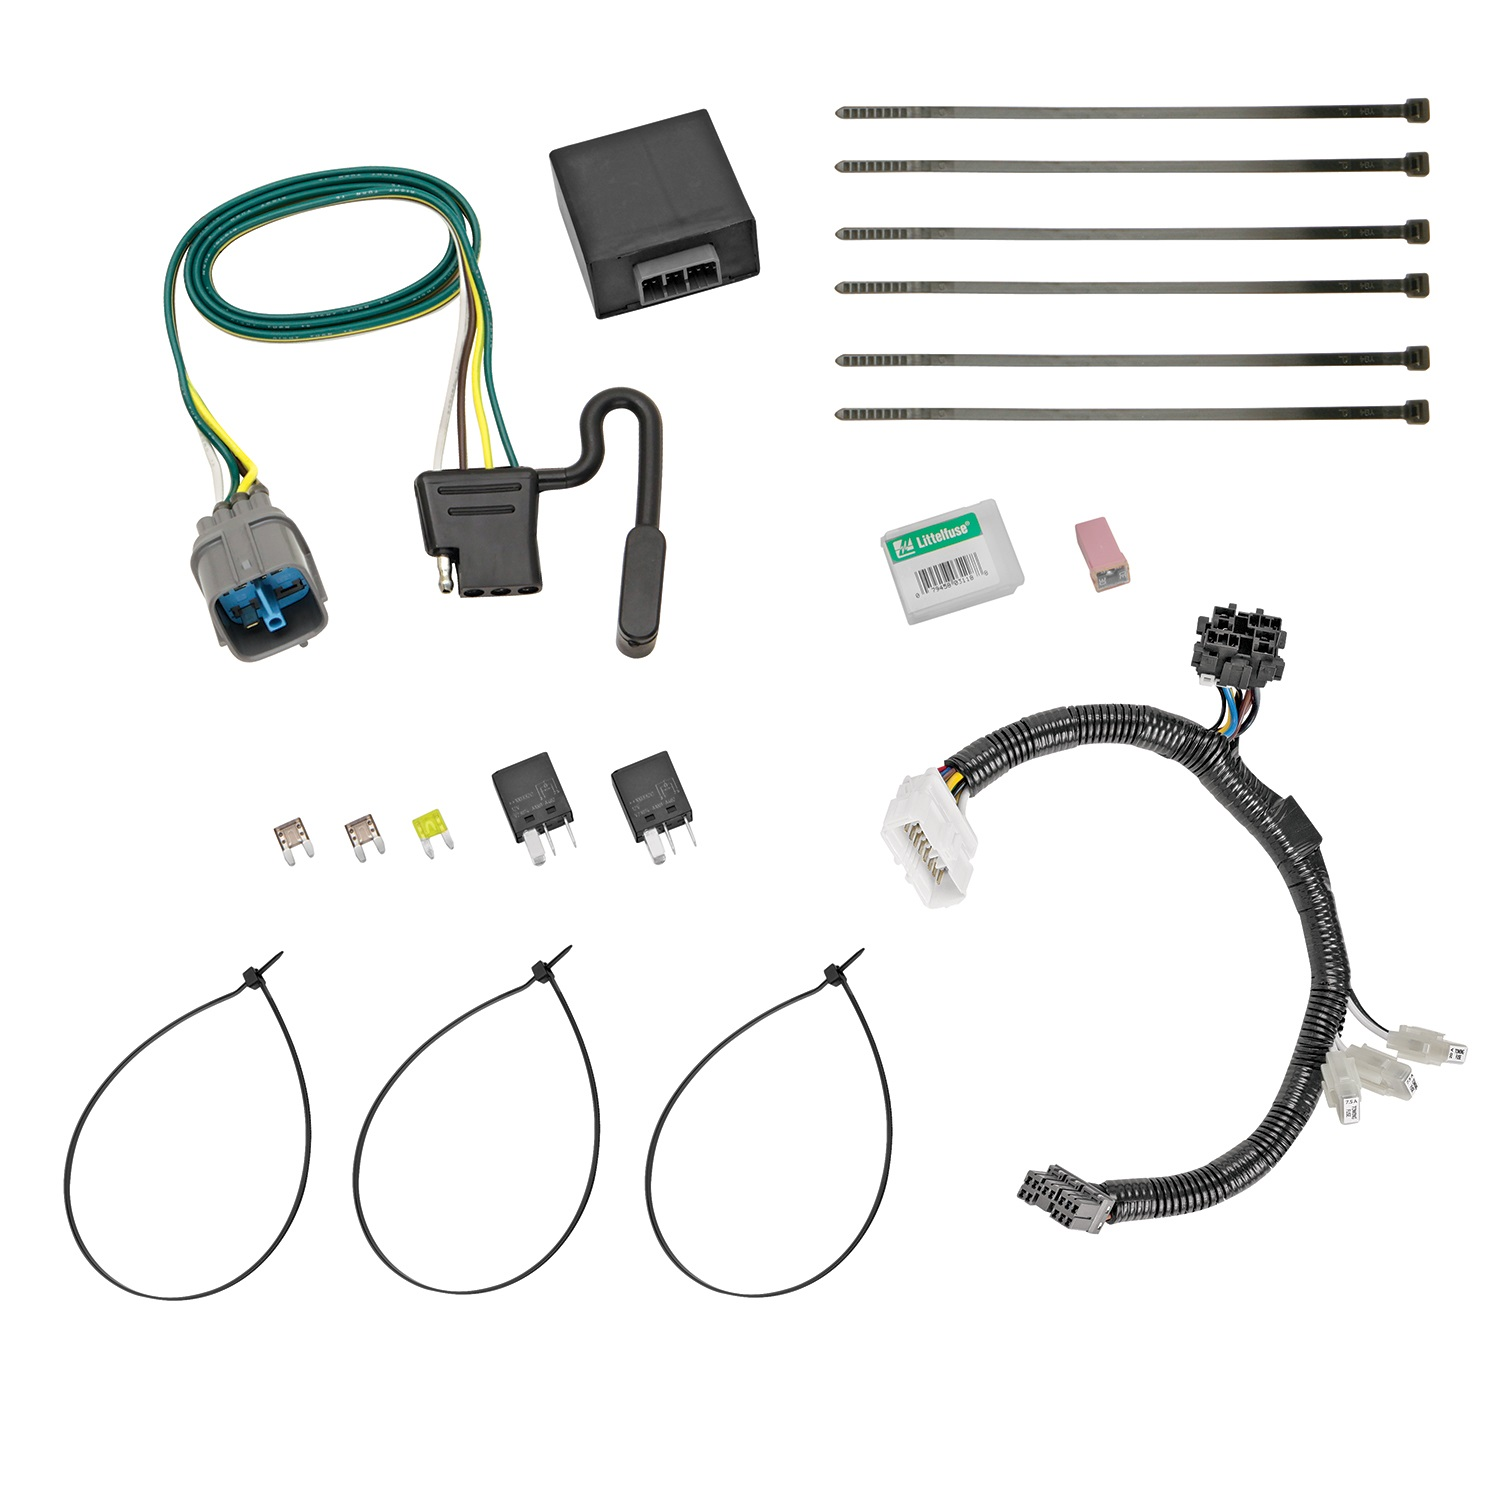 12-C Honda Pilot T-One with Upgraded Circuit Protected Hd Modulite Replacement Auto Part, Easy to Install